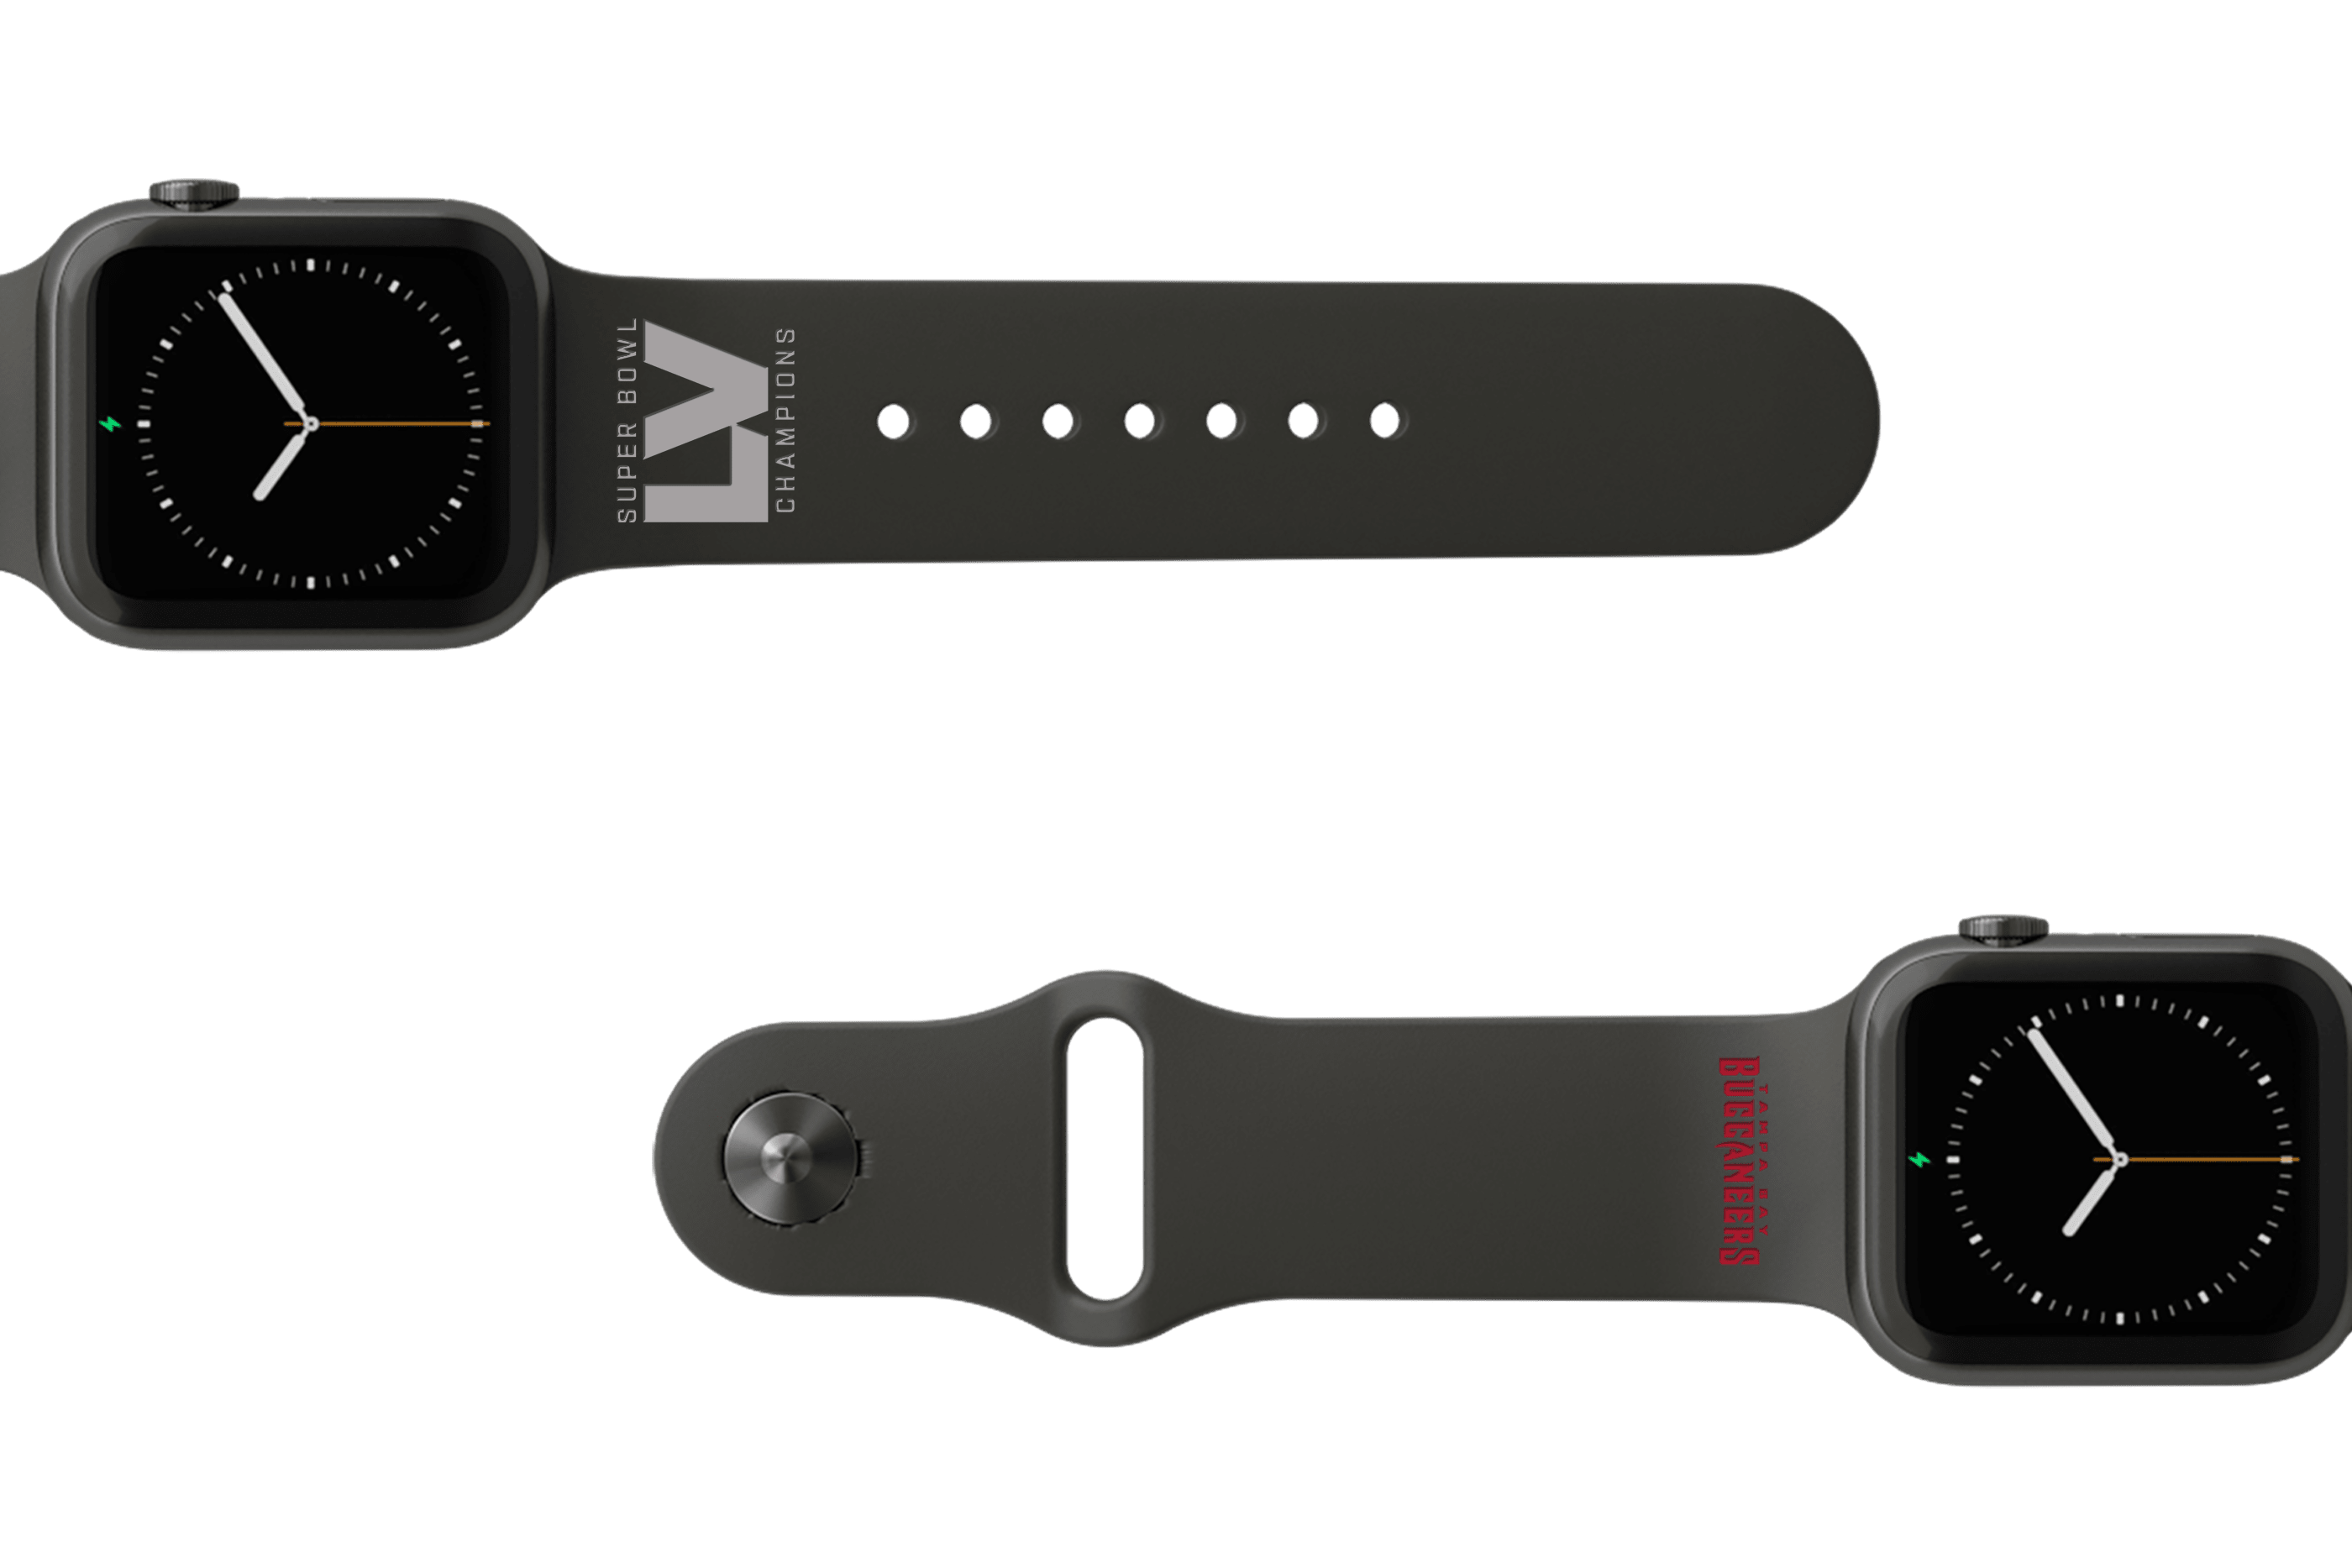 Limited Edition NFL Tampa Bay Buccaneers Super Bowl LV Fan Apple watch band viewed top down